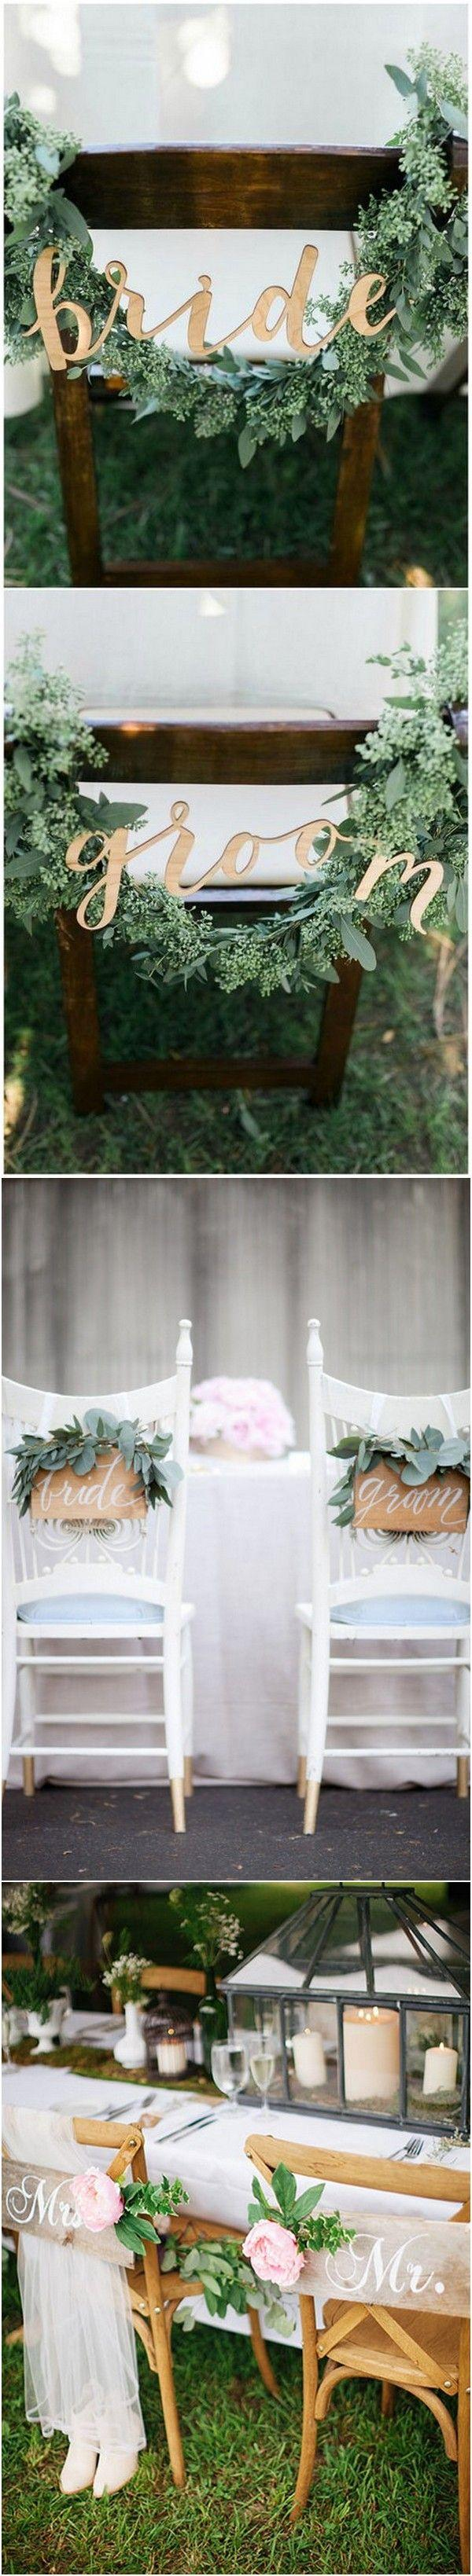 Mariage - 12 Chic Bride And Groom Wedding Chair Decoration Ideas - Page 2 Of 2